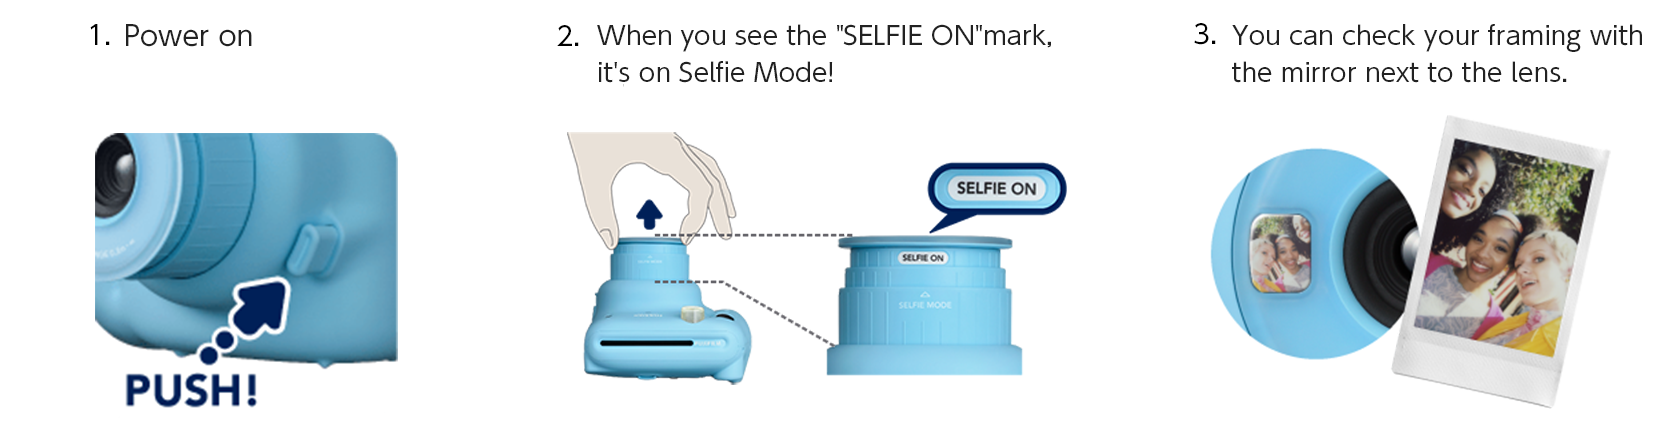 Image of 3 steps to turn Mini 11 into Selfie or Close-ups Mode